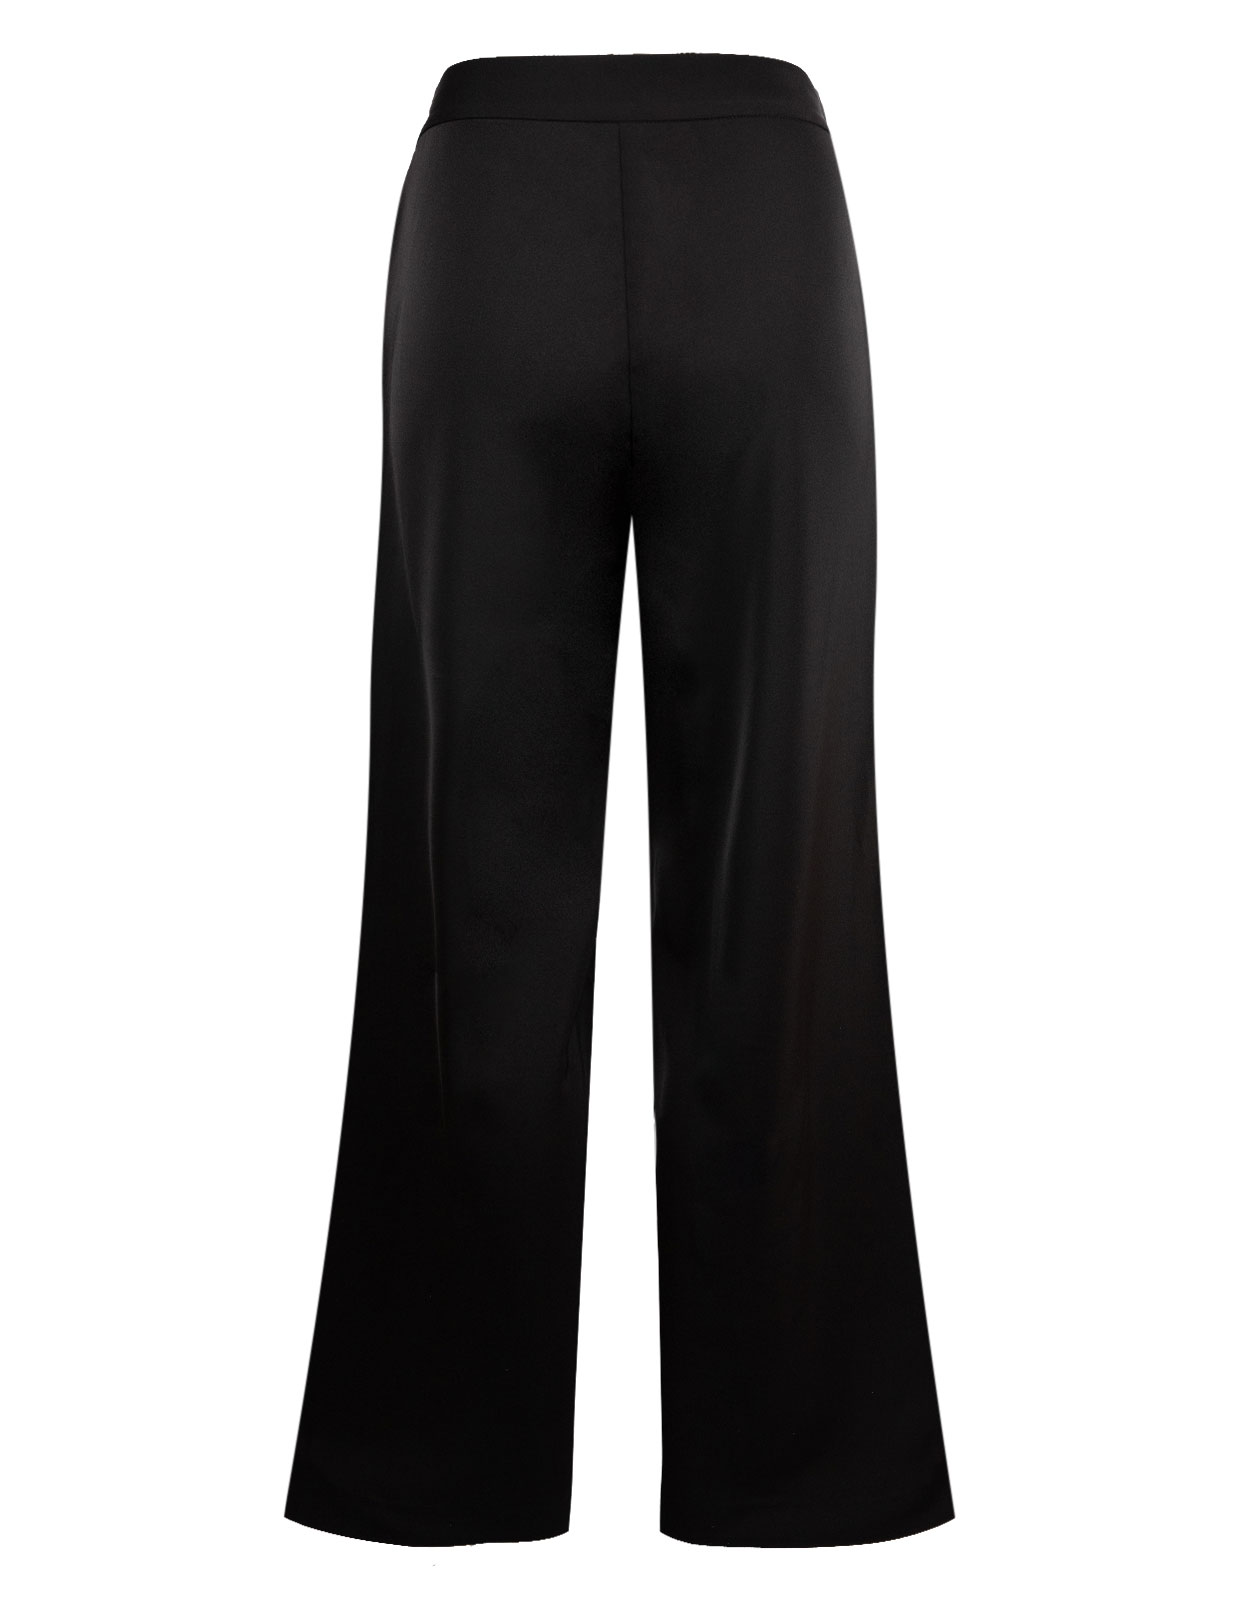 Ingrid SatinTrousers Black